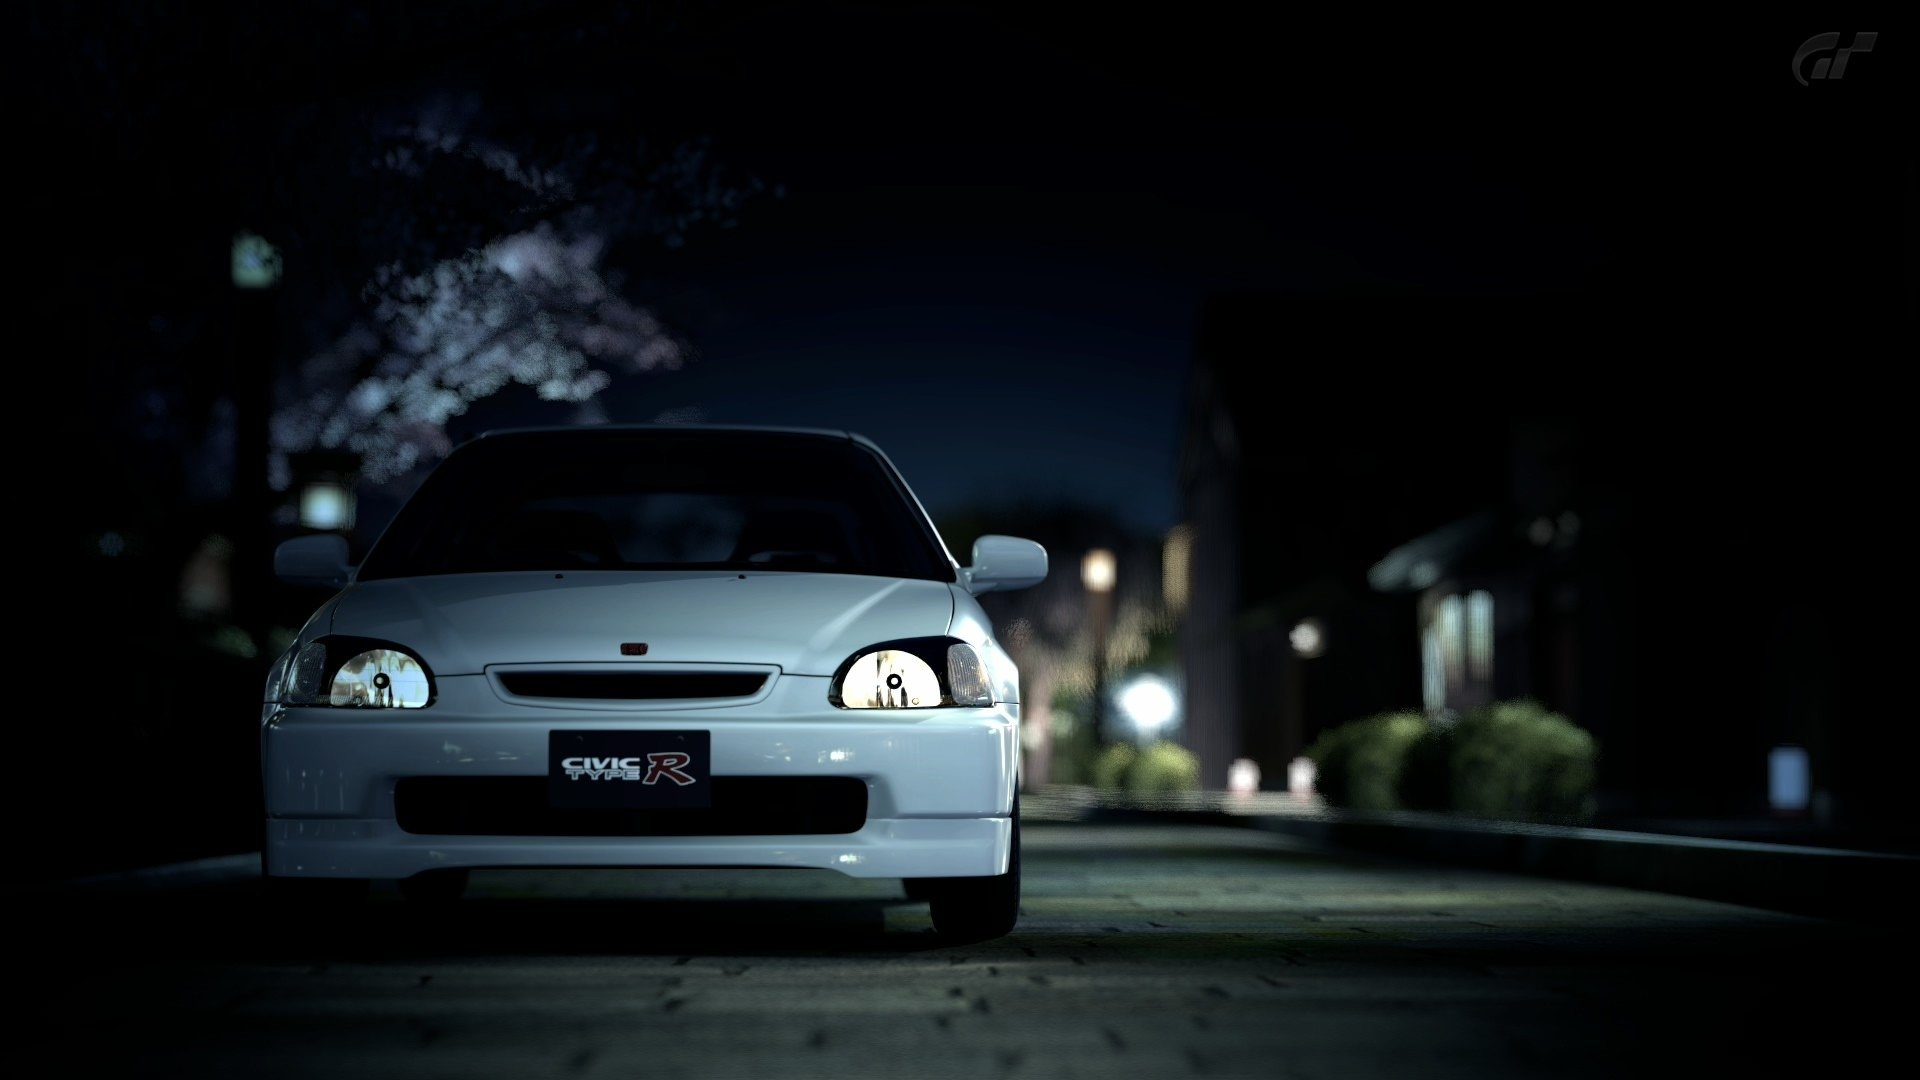 24 honda civic hd wallpapers | background images - wallpaper abyss